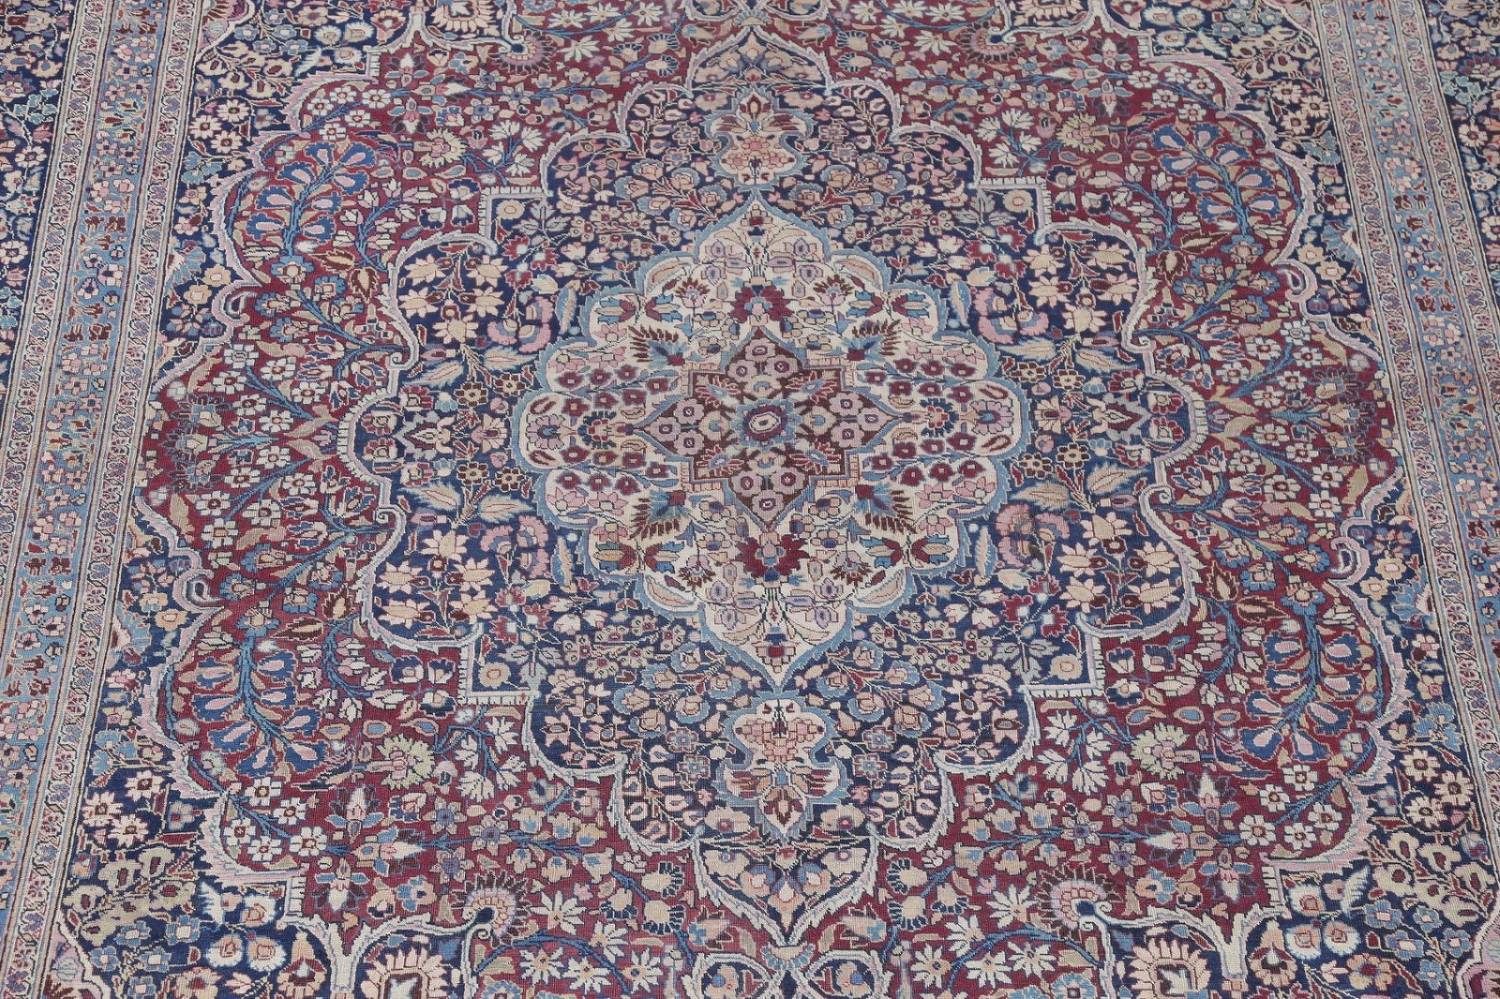 Pre-1900 Antique Floral Mashad Persian Hand-Knotted 10x13 Burgundy Area Rug image 4